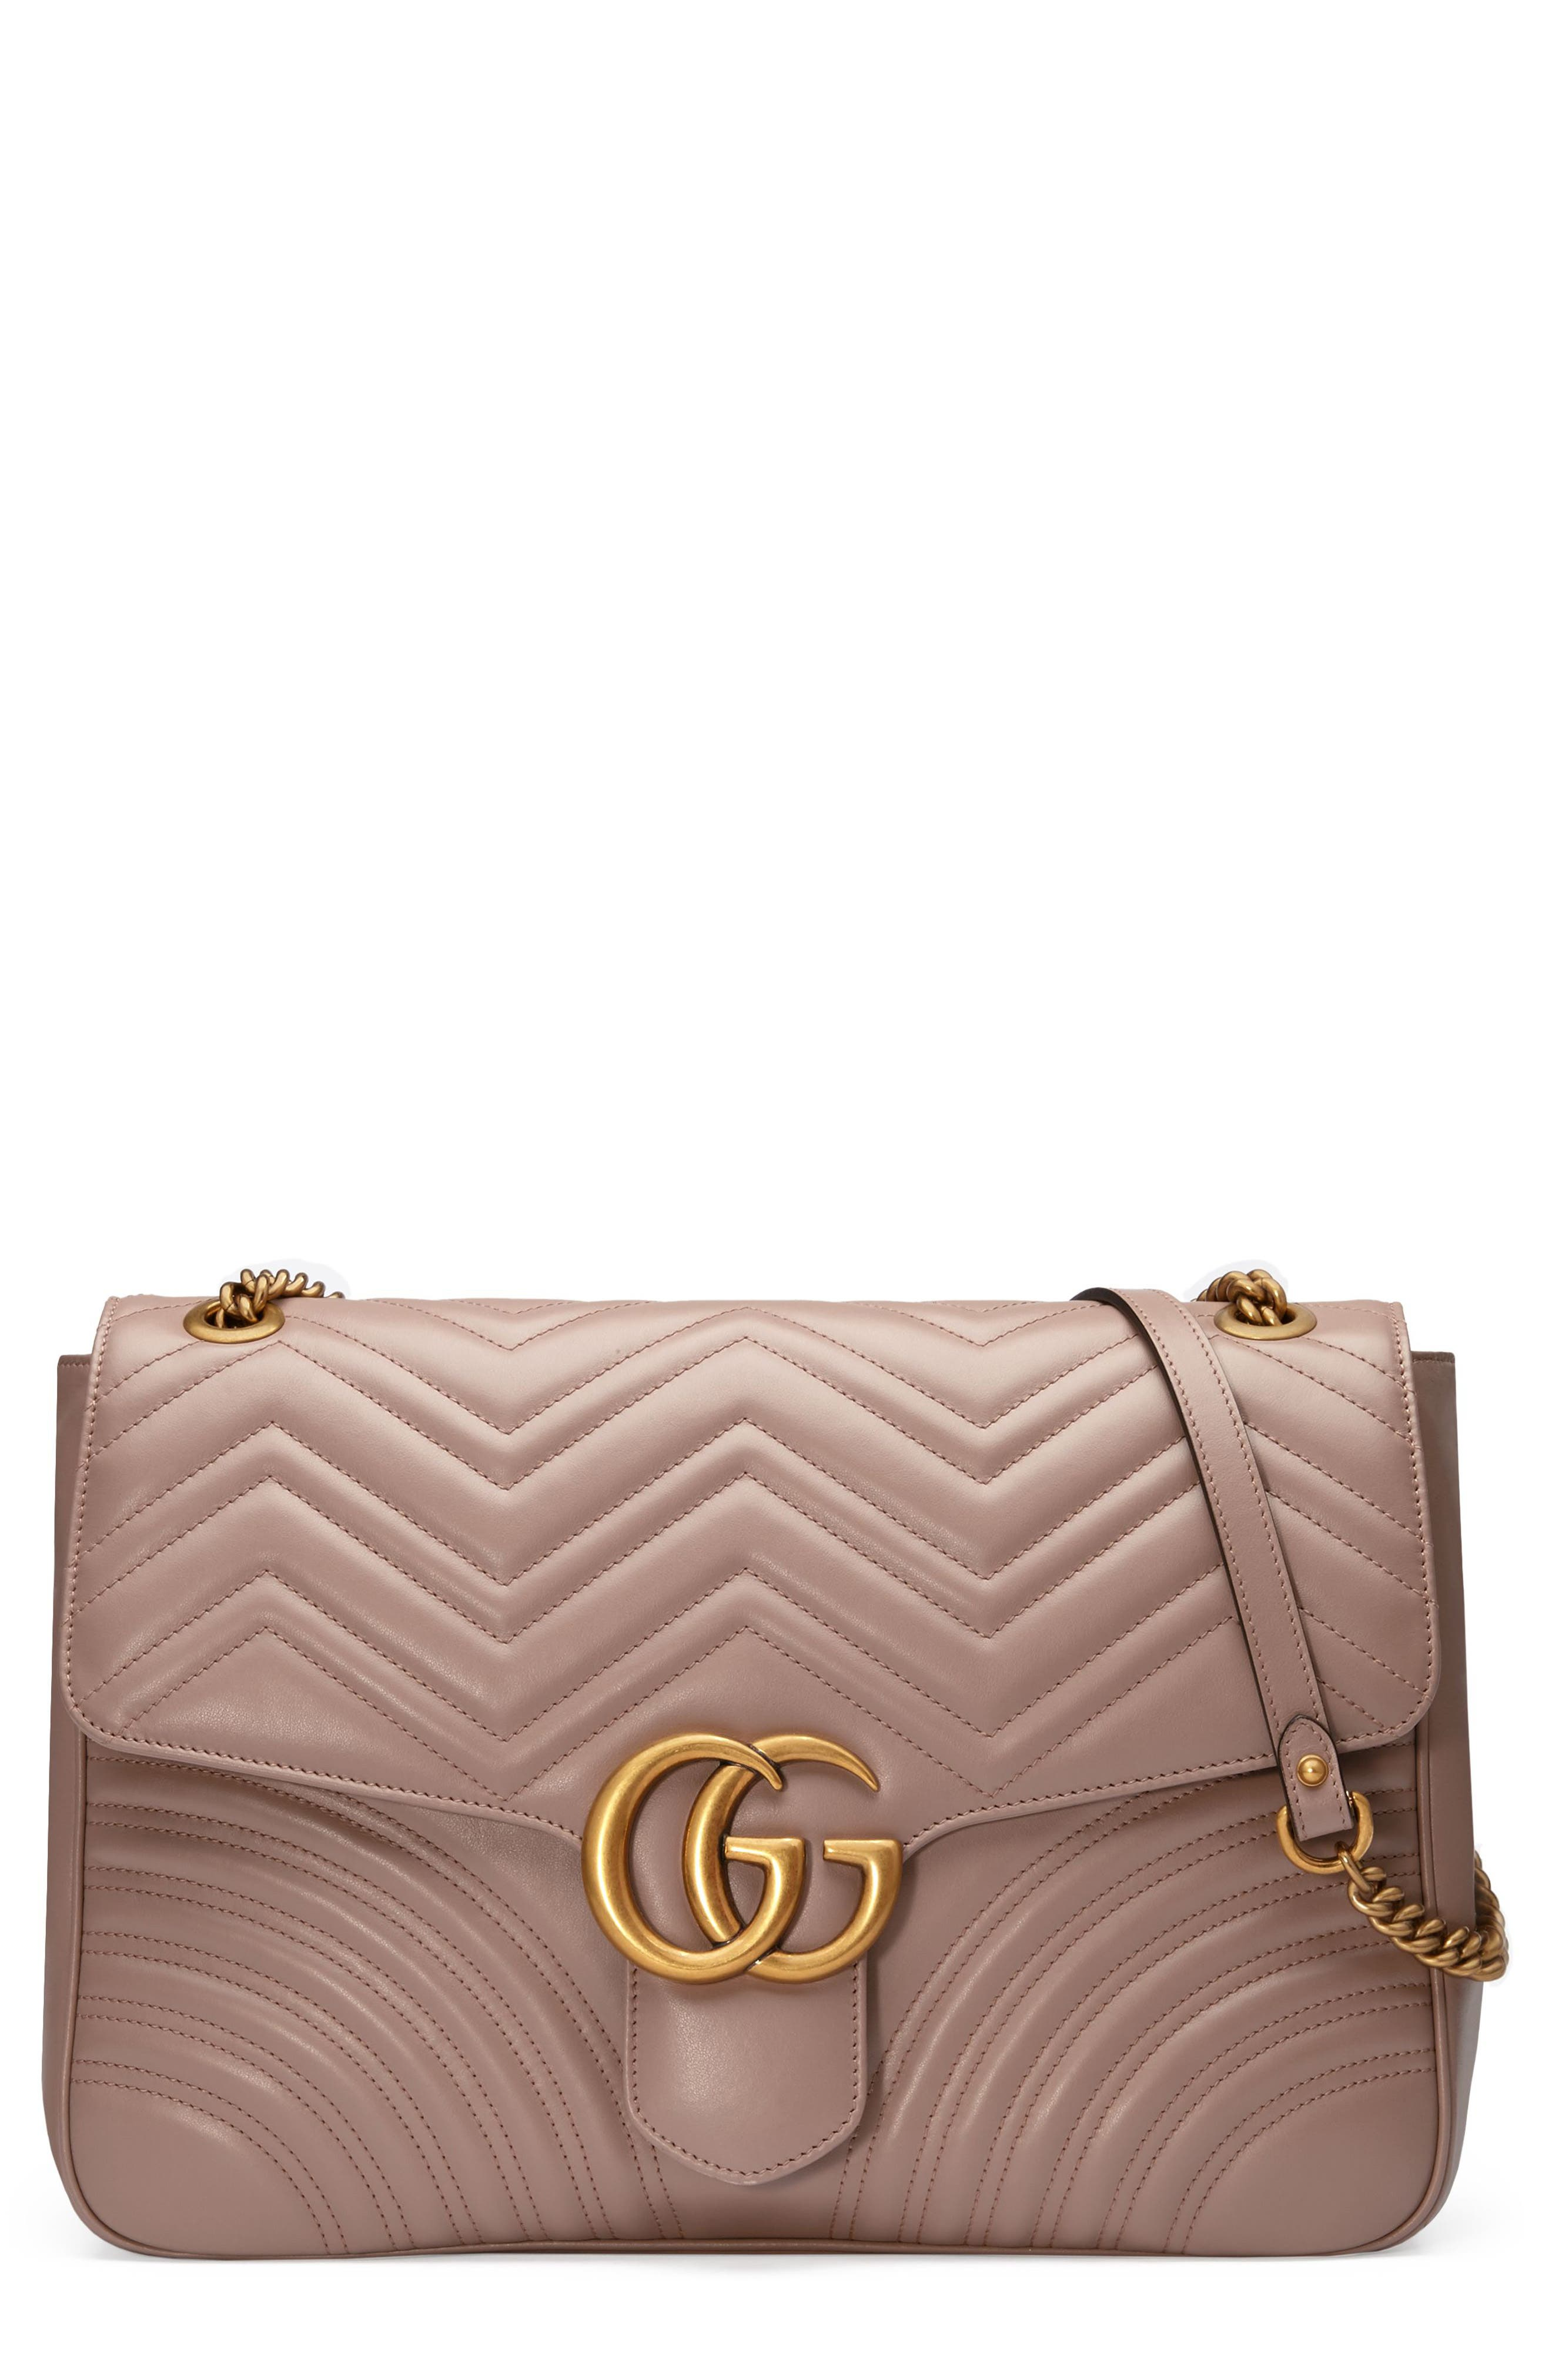 gucci bags at nordstrom. gucci gg large marmont 2.0 matelassé leather shoulder bag bags at nordstrom g